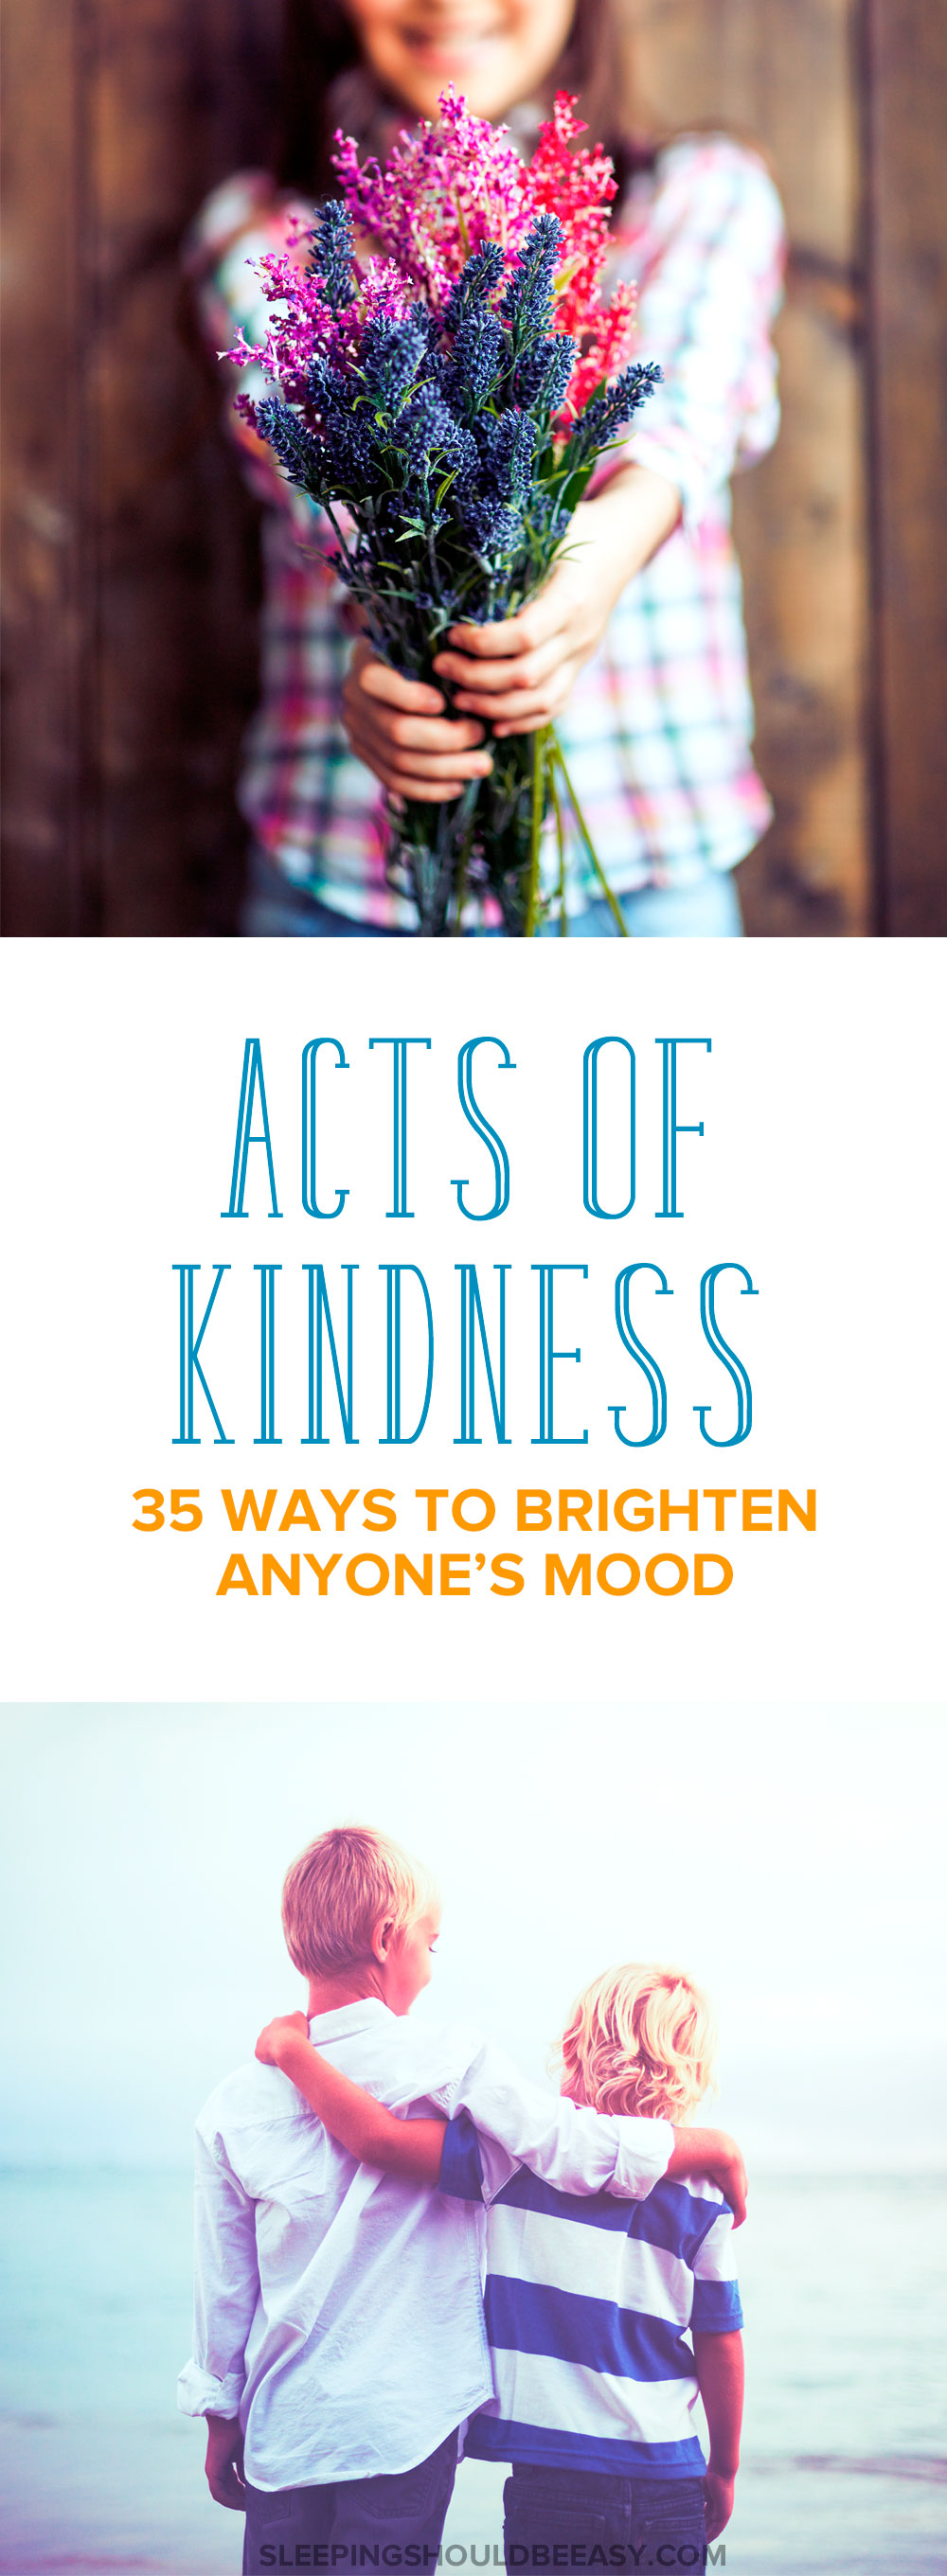 Start your day right and practice random acts of kindness to brighten anyone's mood. Here are 35 unique ideas to make family, friends and strangers happy.